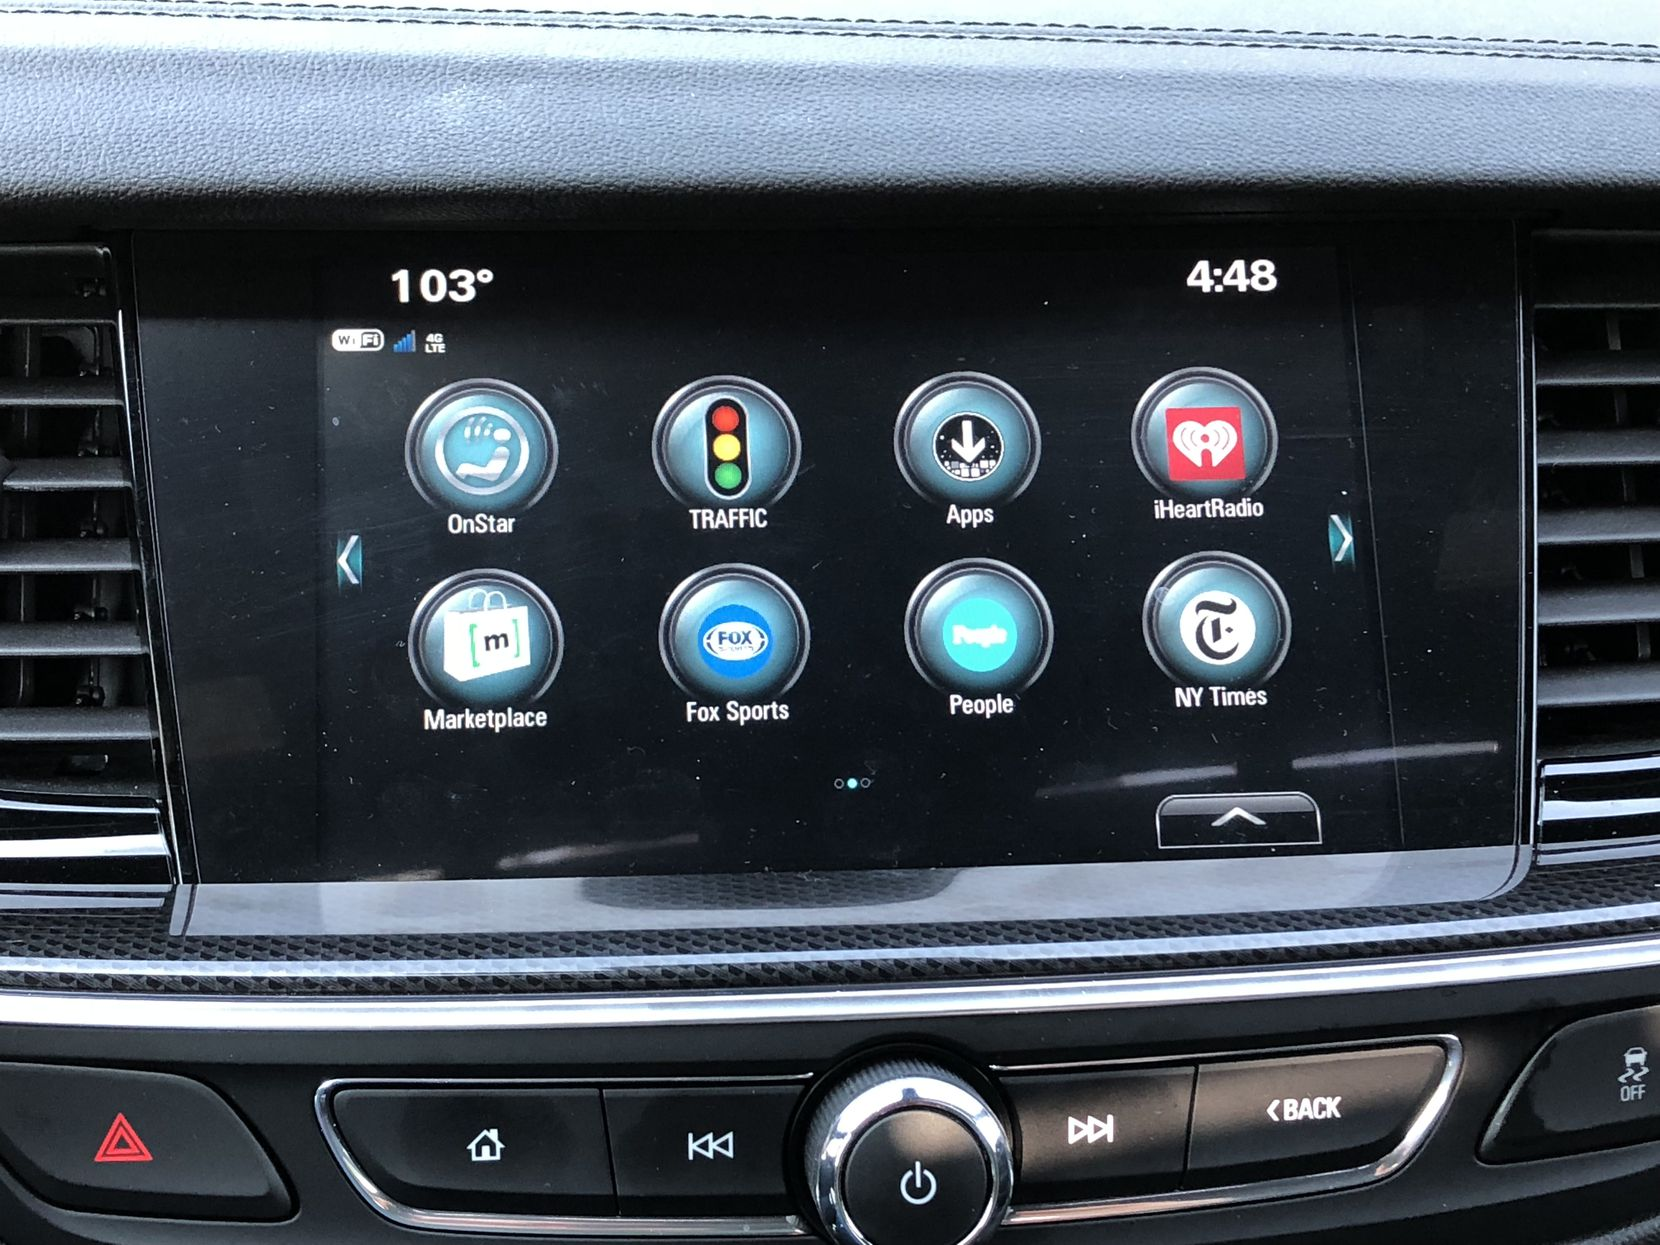 Apps on the touch screen of the 2018 Buick Regal GS